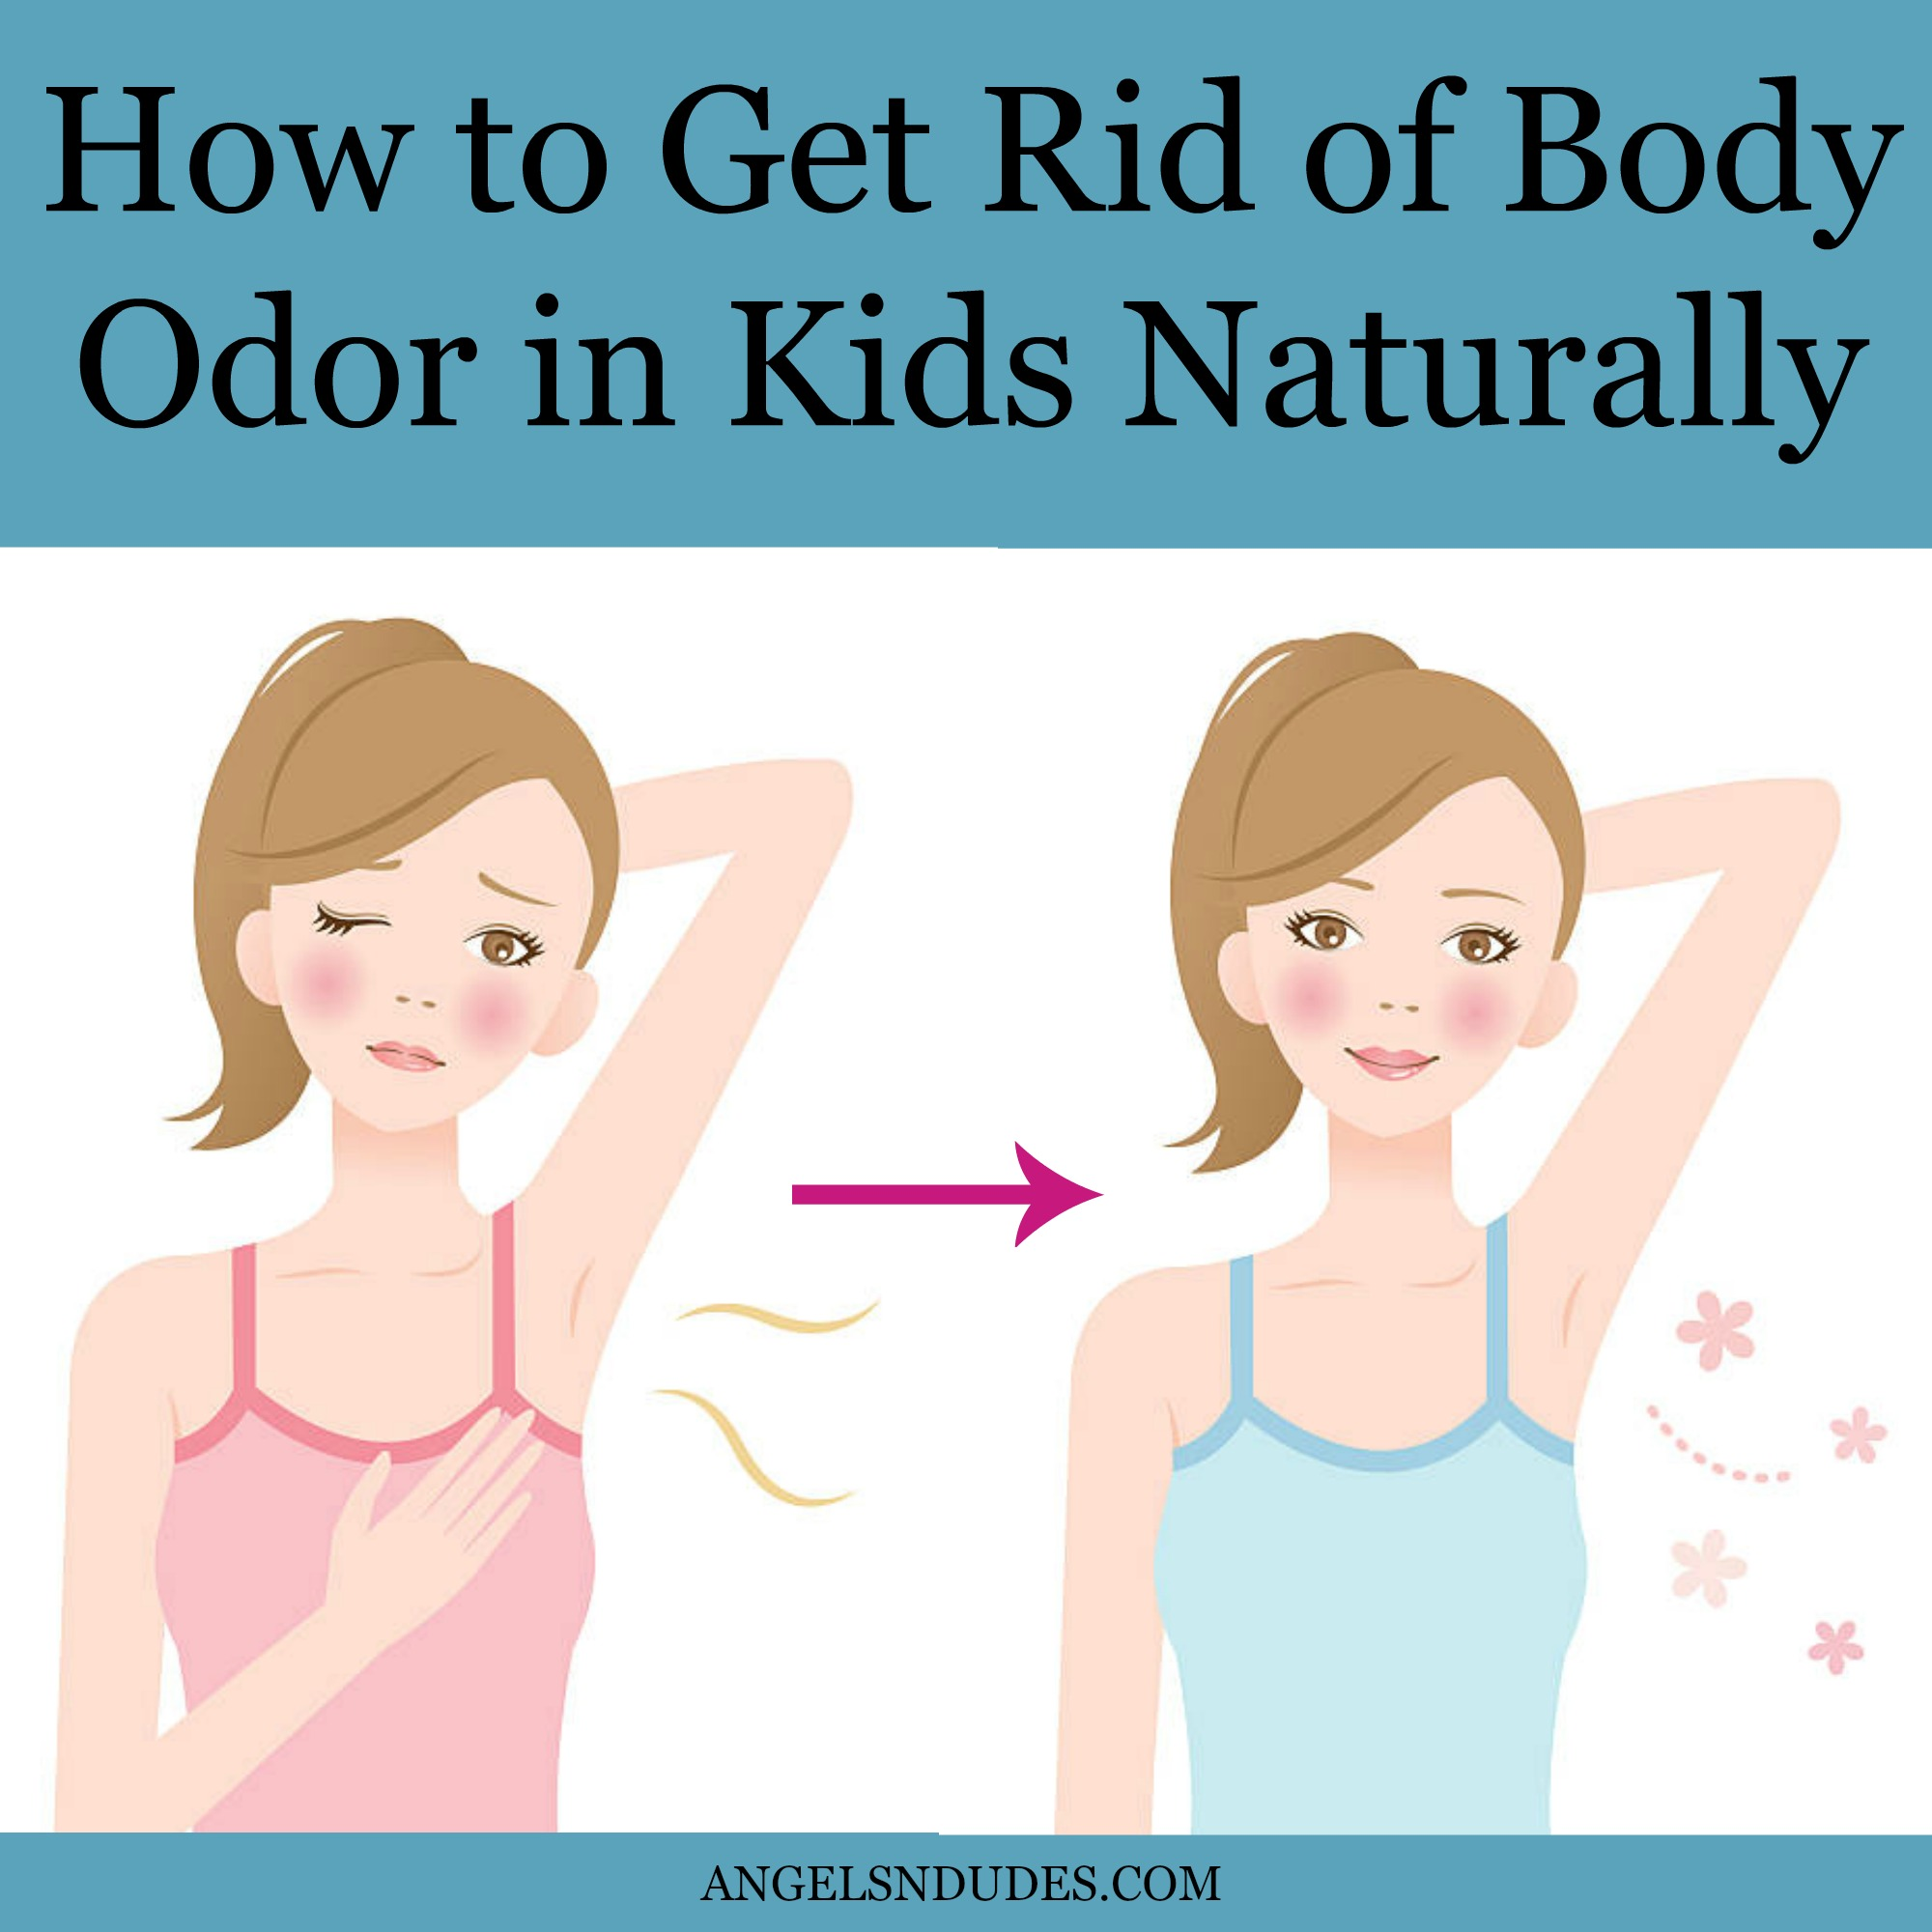 Body Odor in Kids